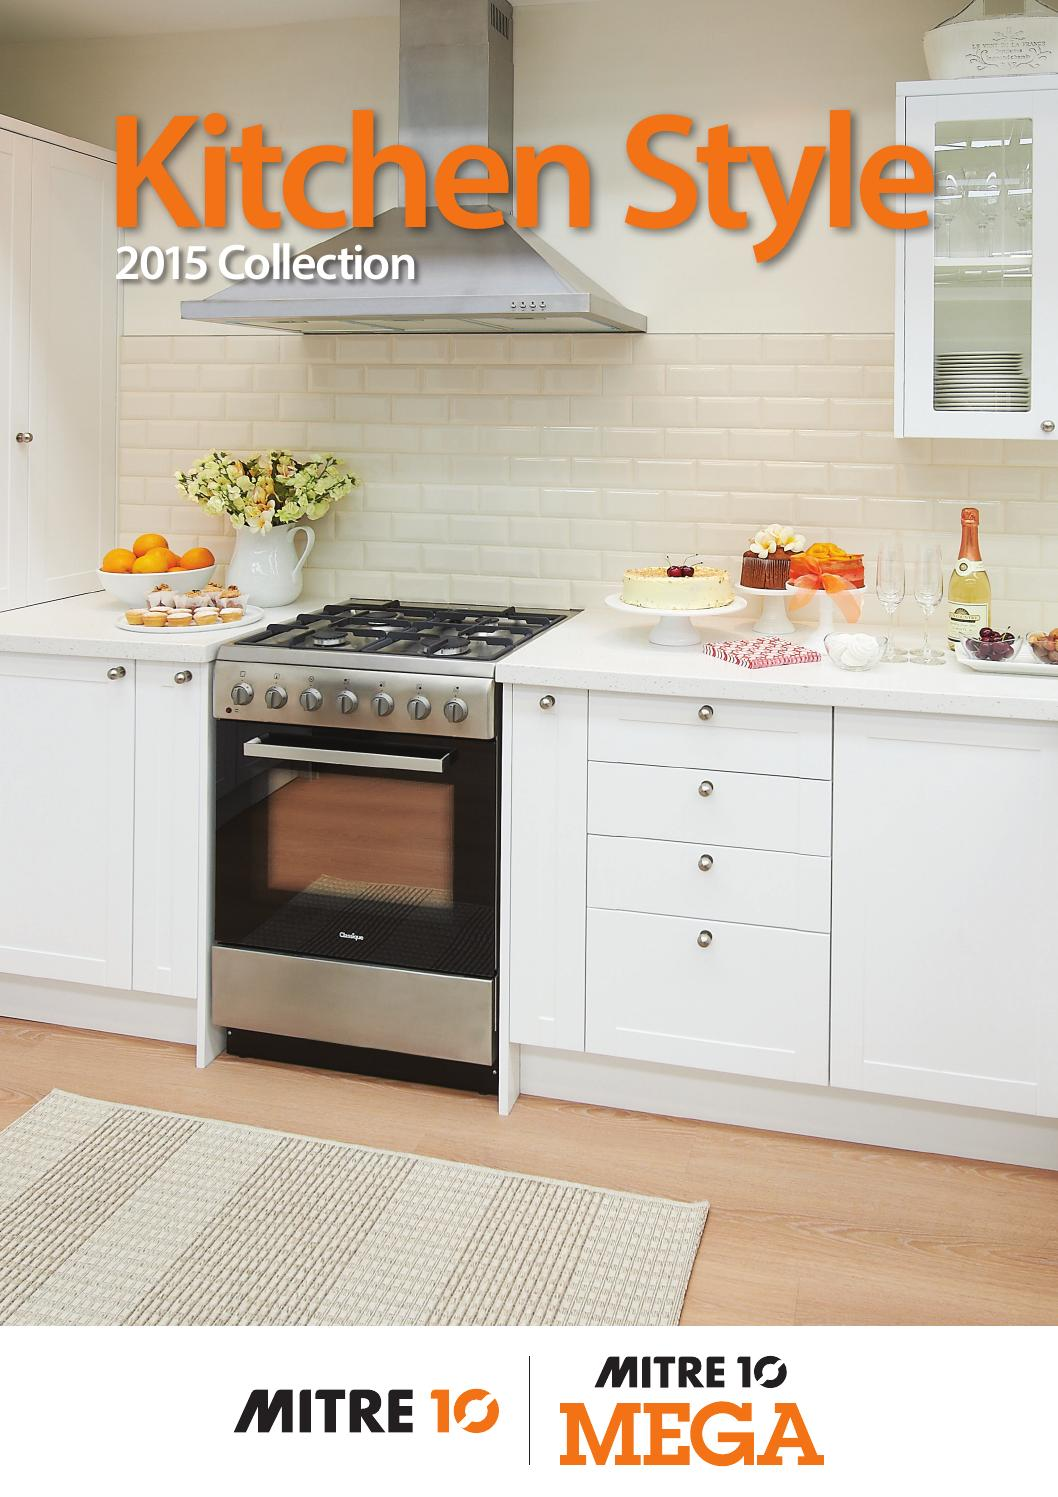 mitre 10 kitchen cabinets kitchen style 2015 collection by draftfcb issuu 23428